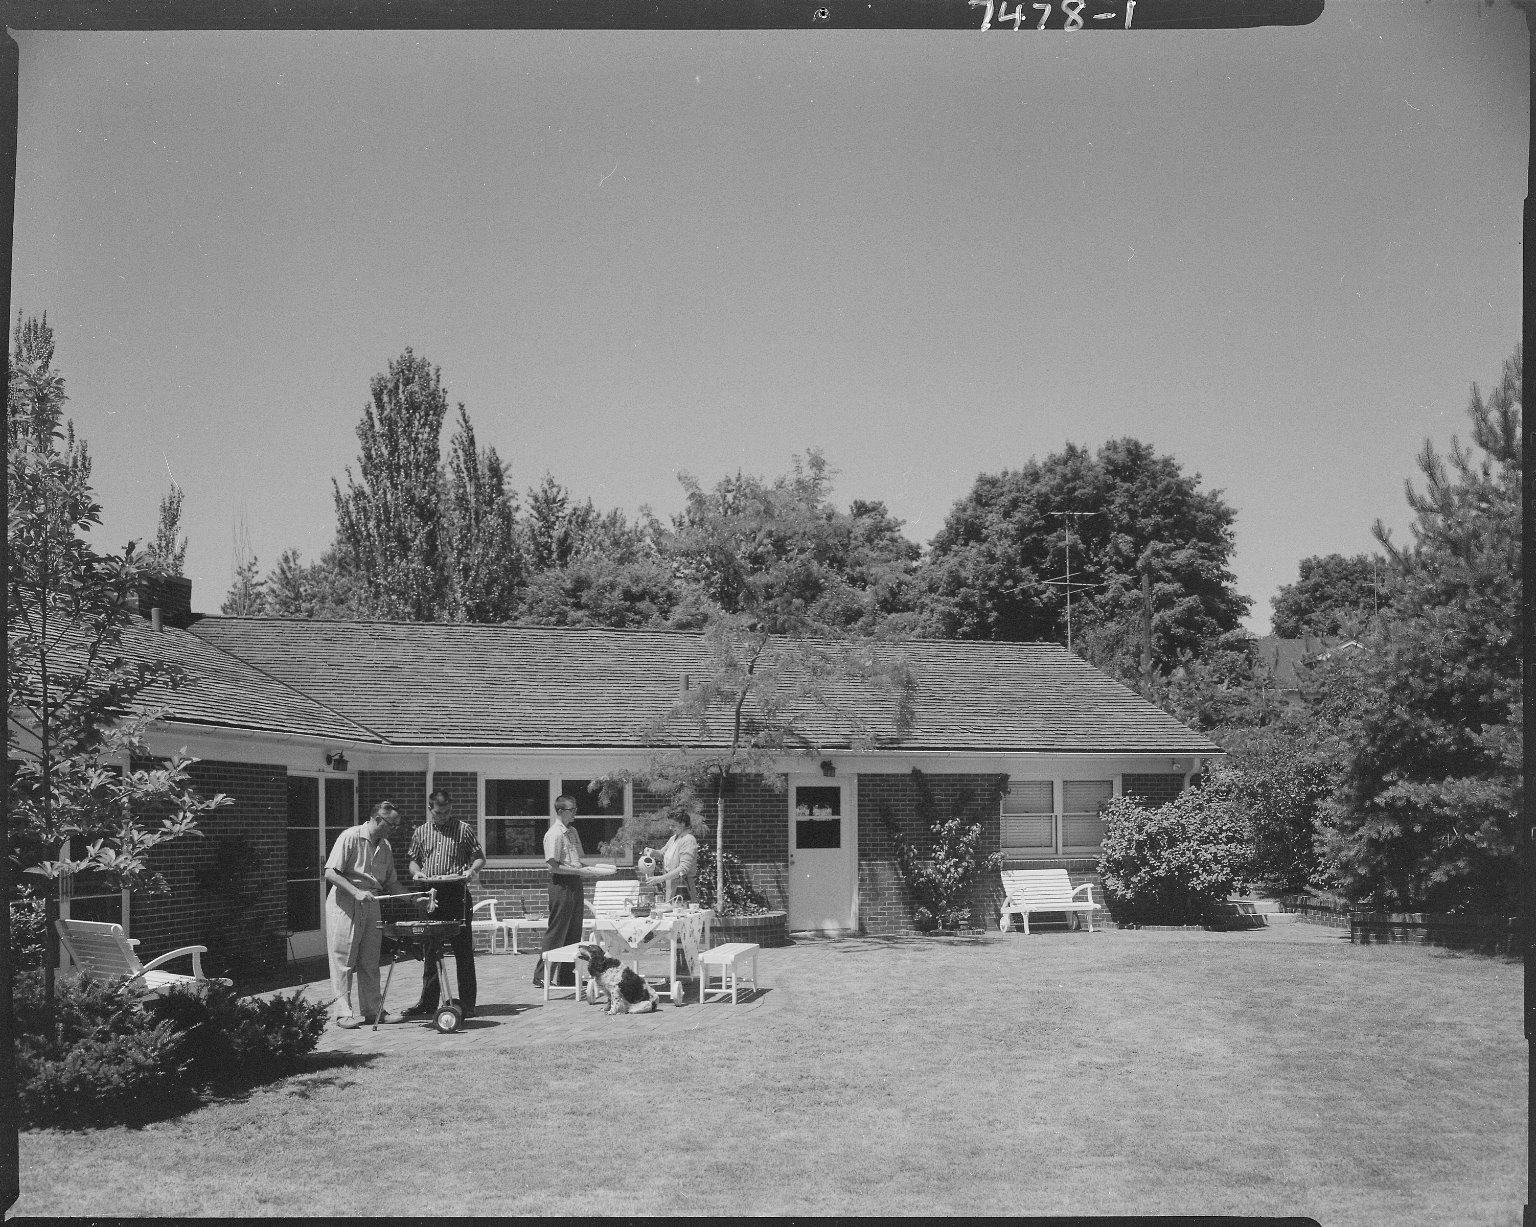 Robert Britigan Home, backyard picnic